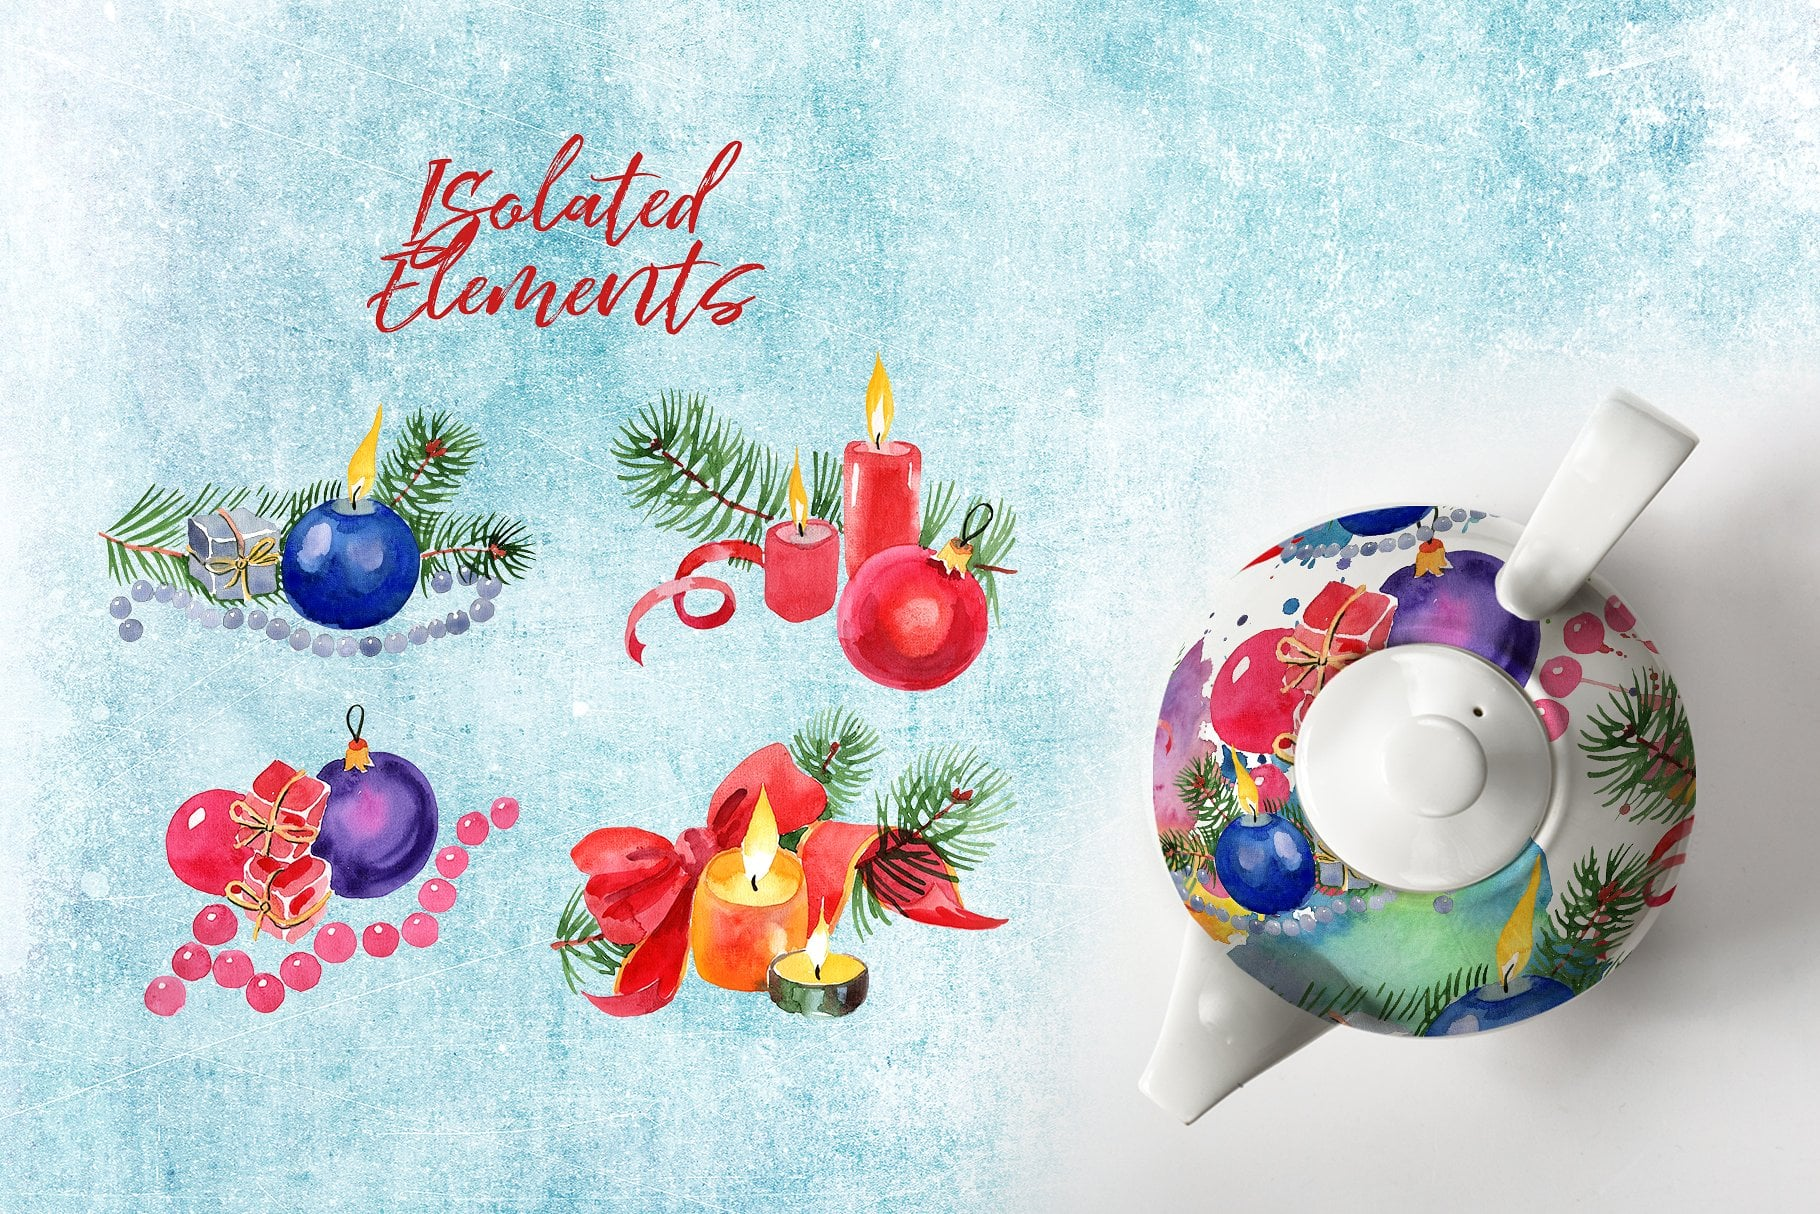 A set of New Year's candles PNG set - $11 - cover 7 1 2